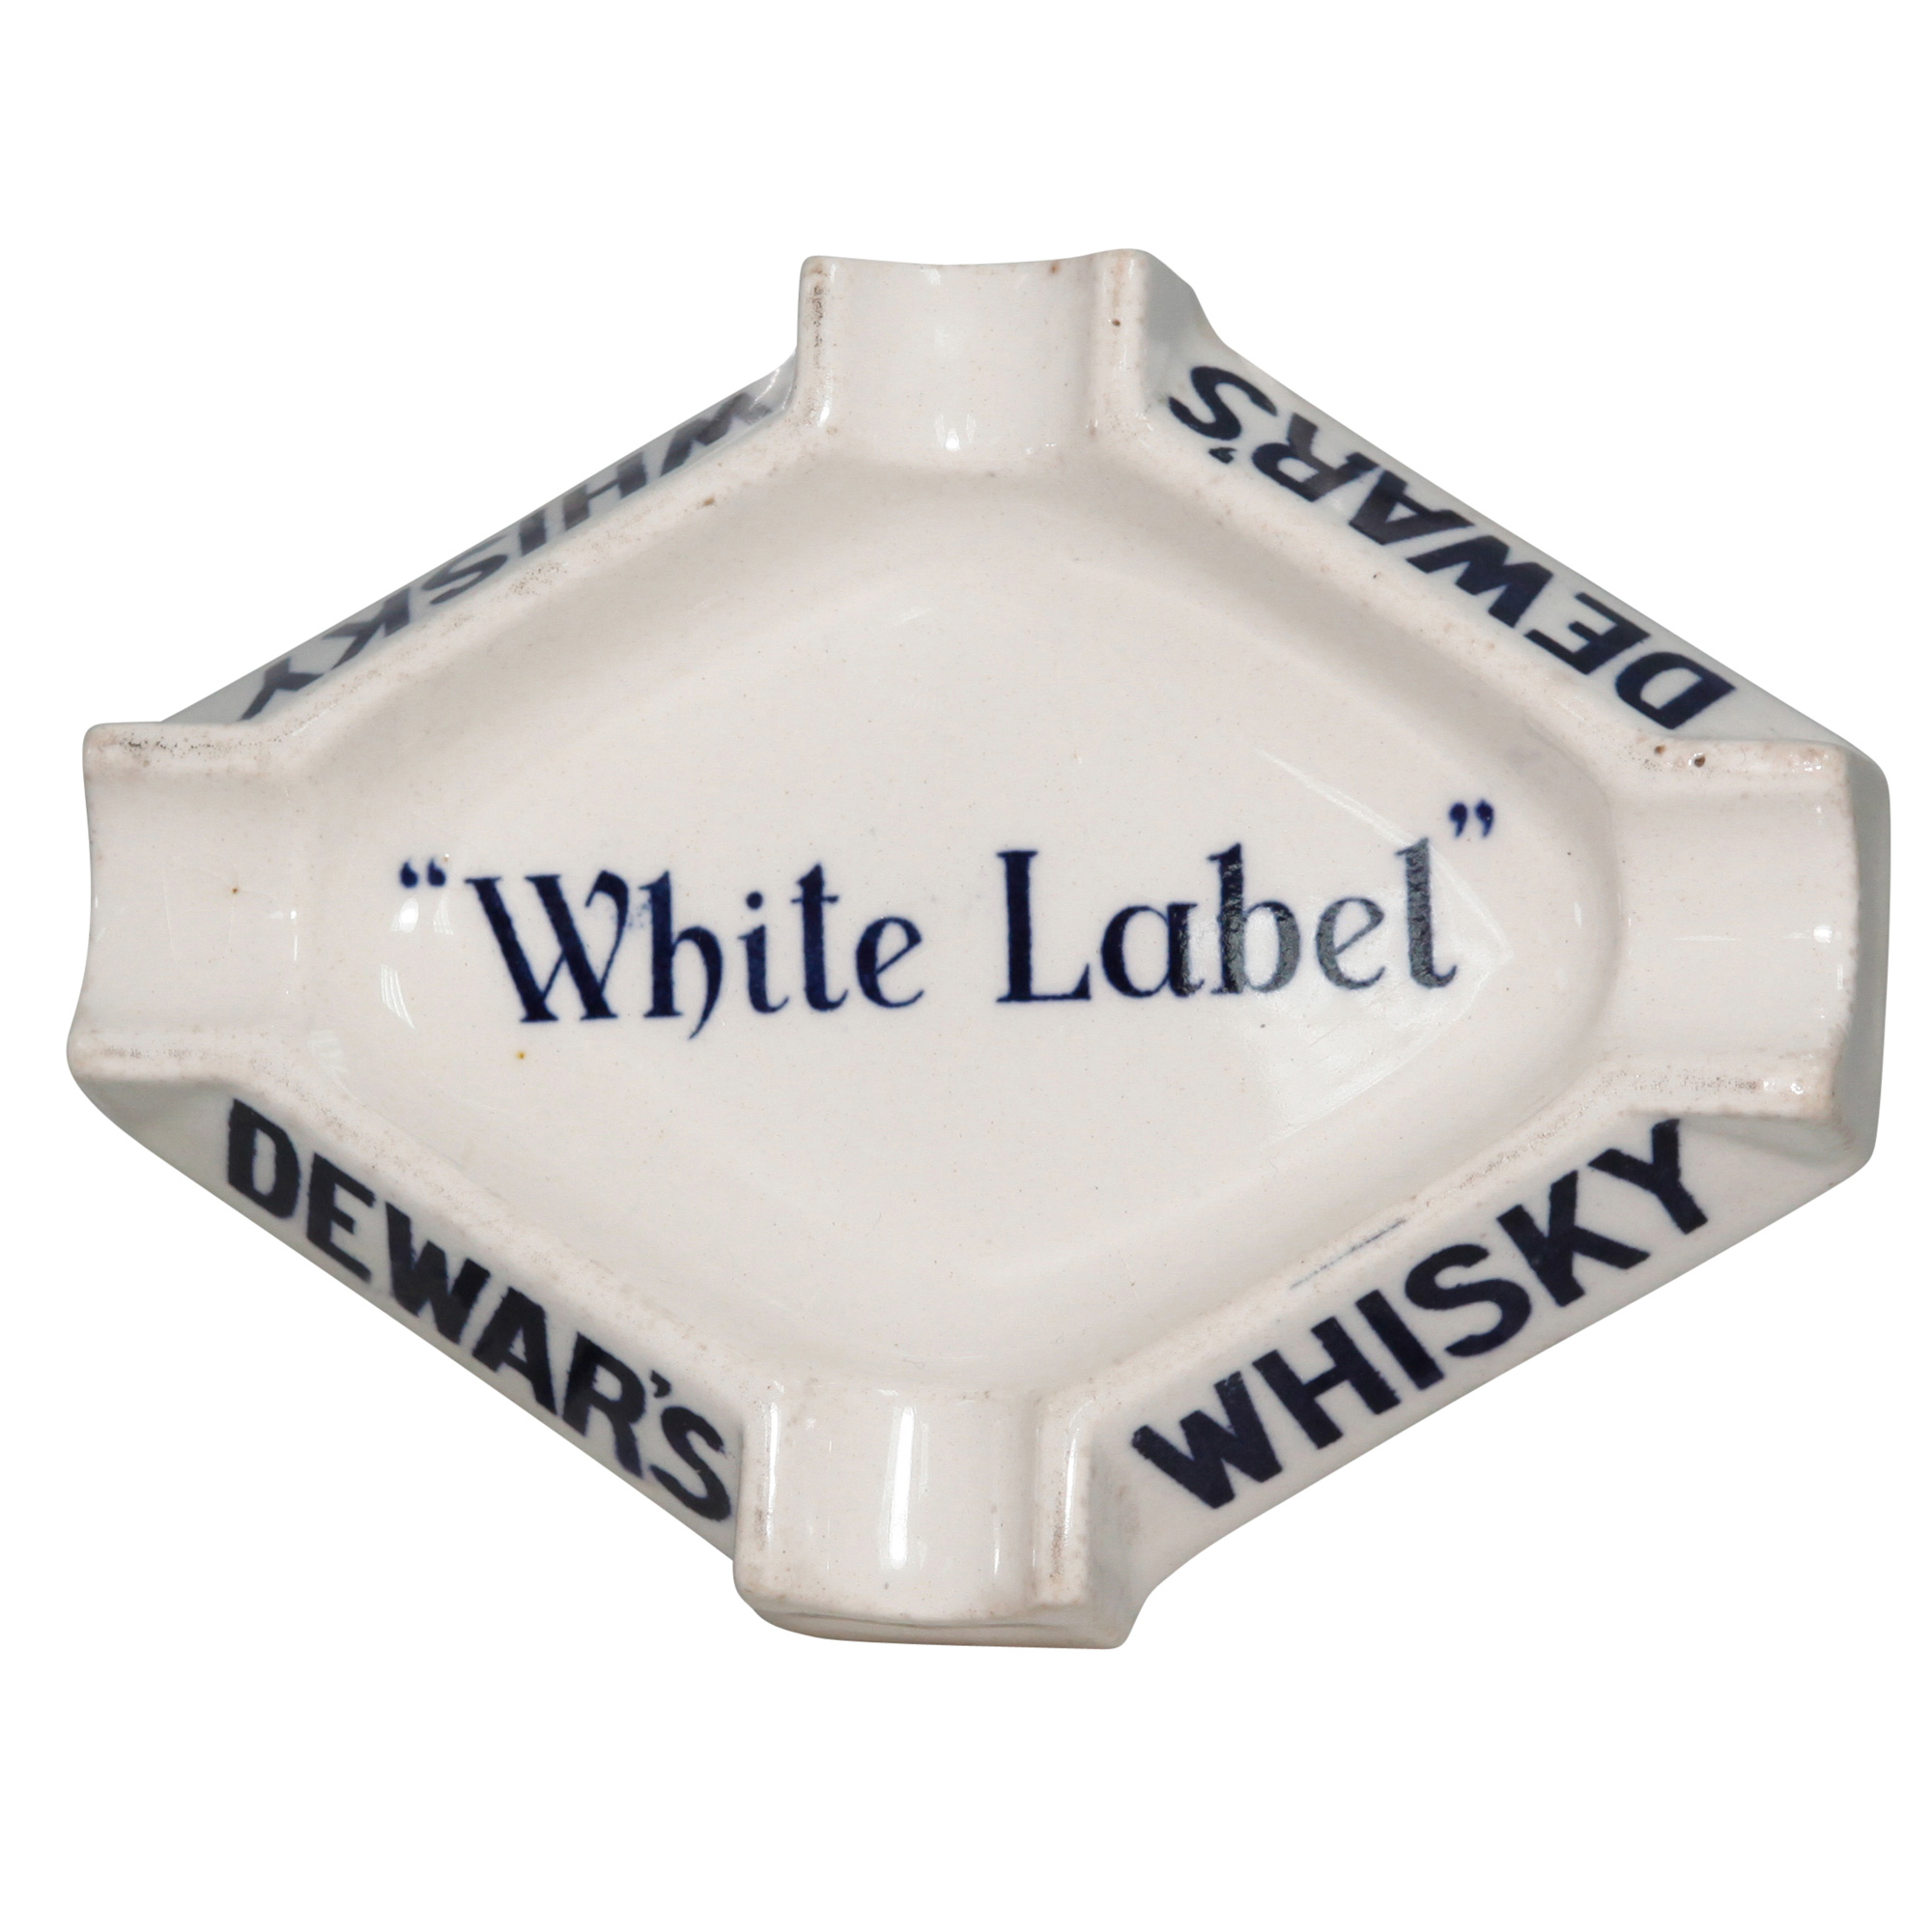 Dewars White Label Ashtray